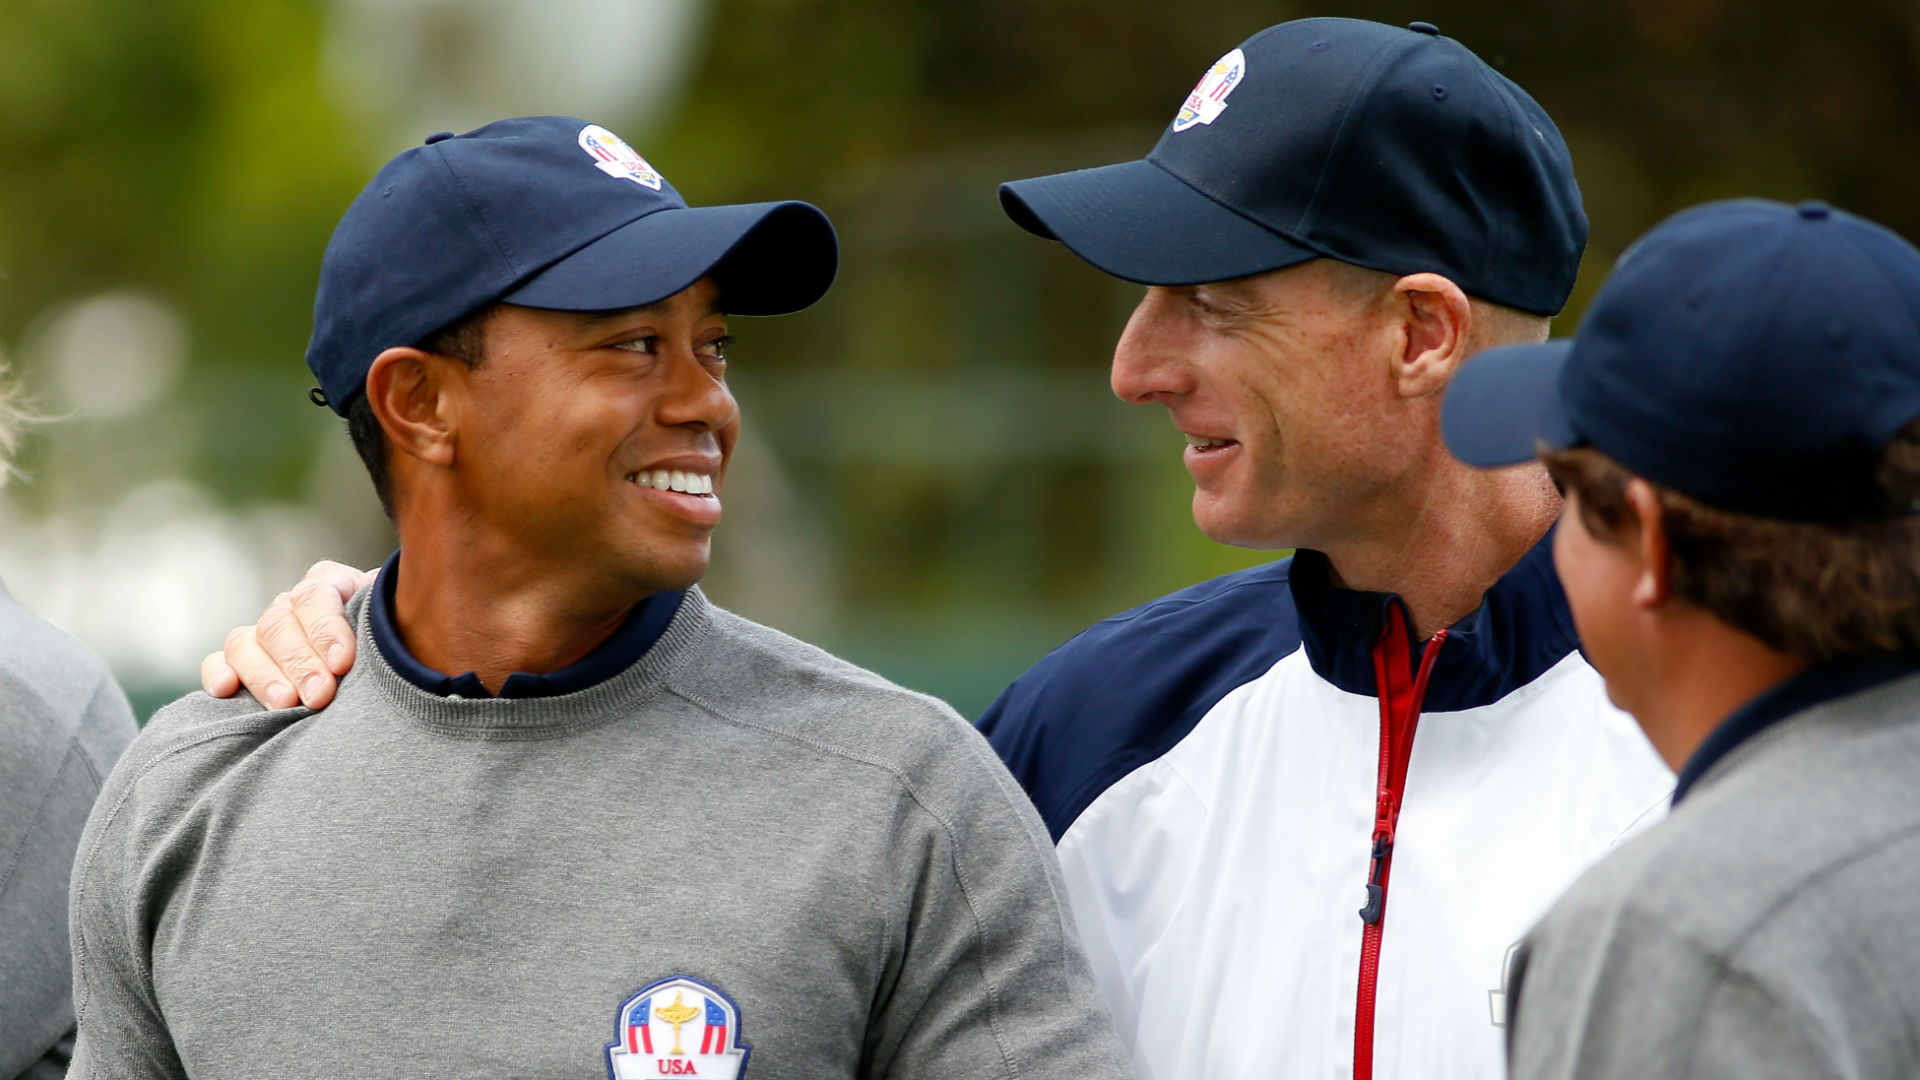 Tiger Woods in line for U.S. Ryder Cup role in 2018